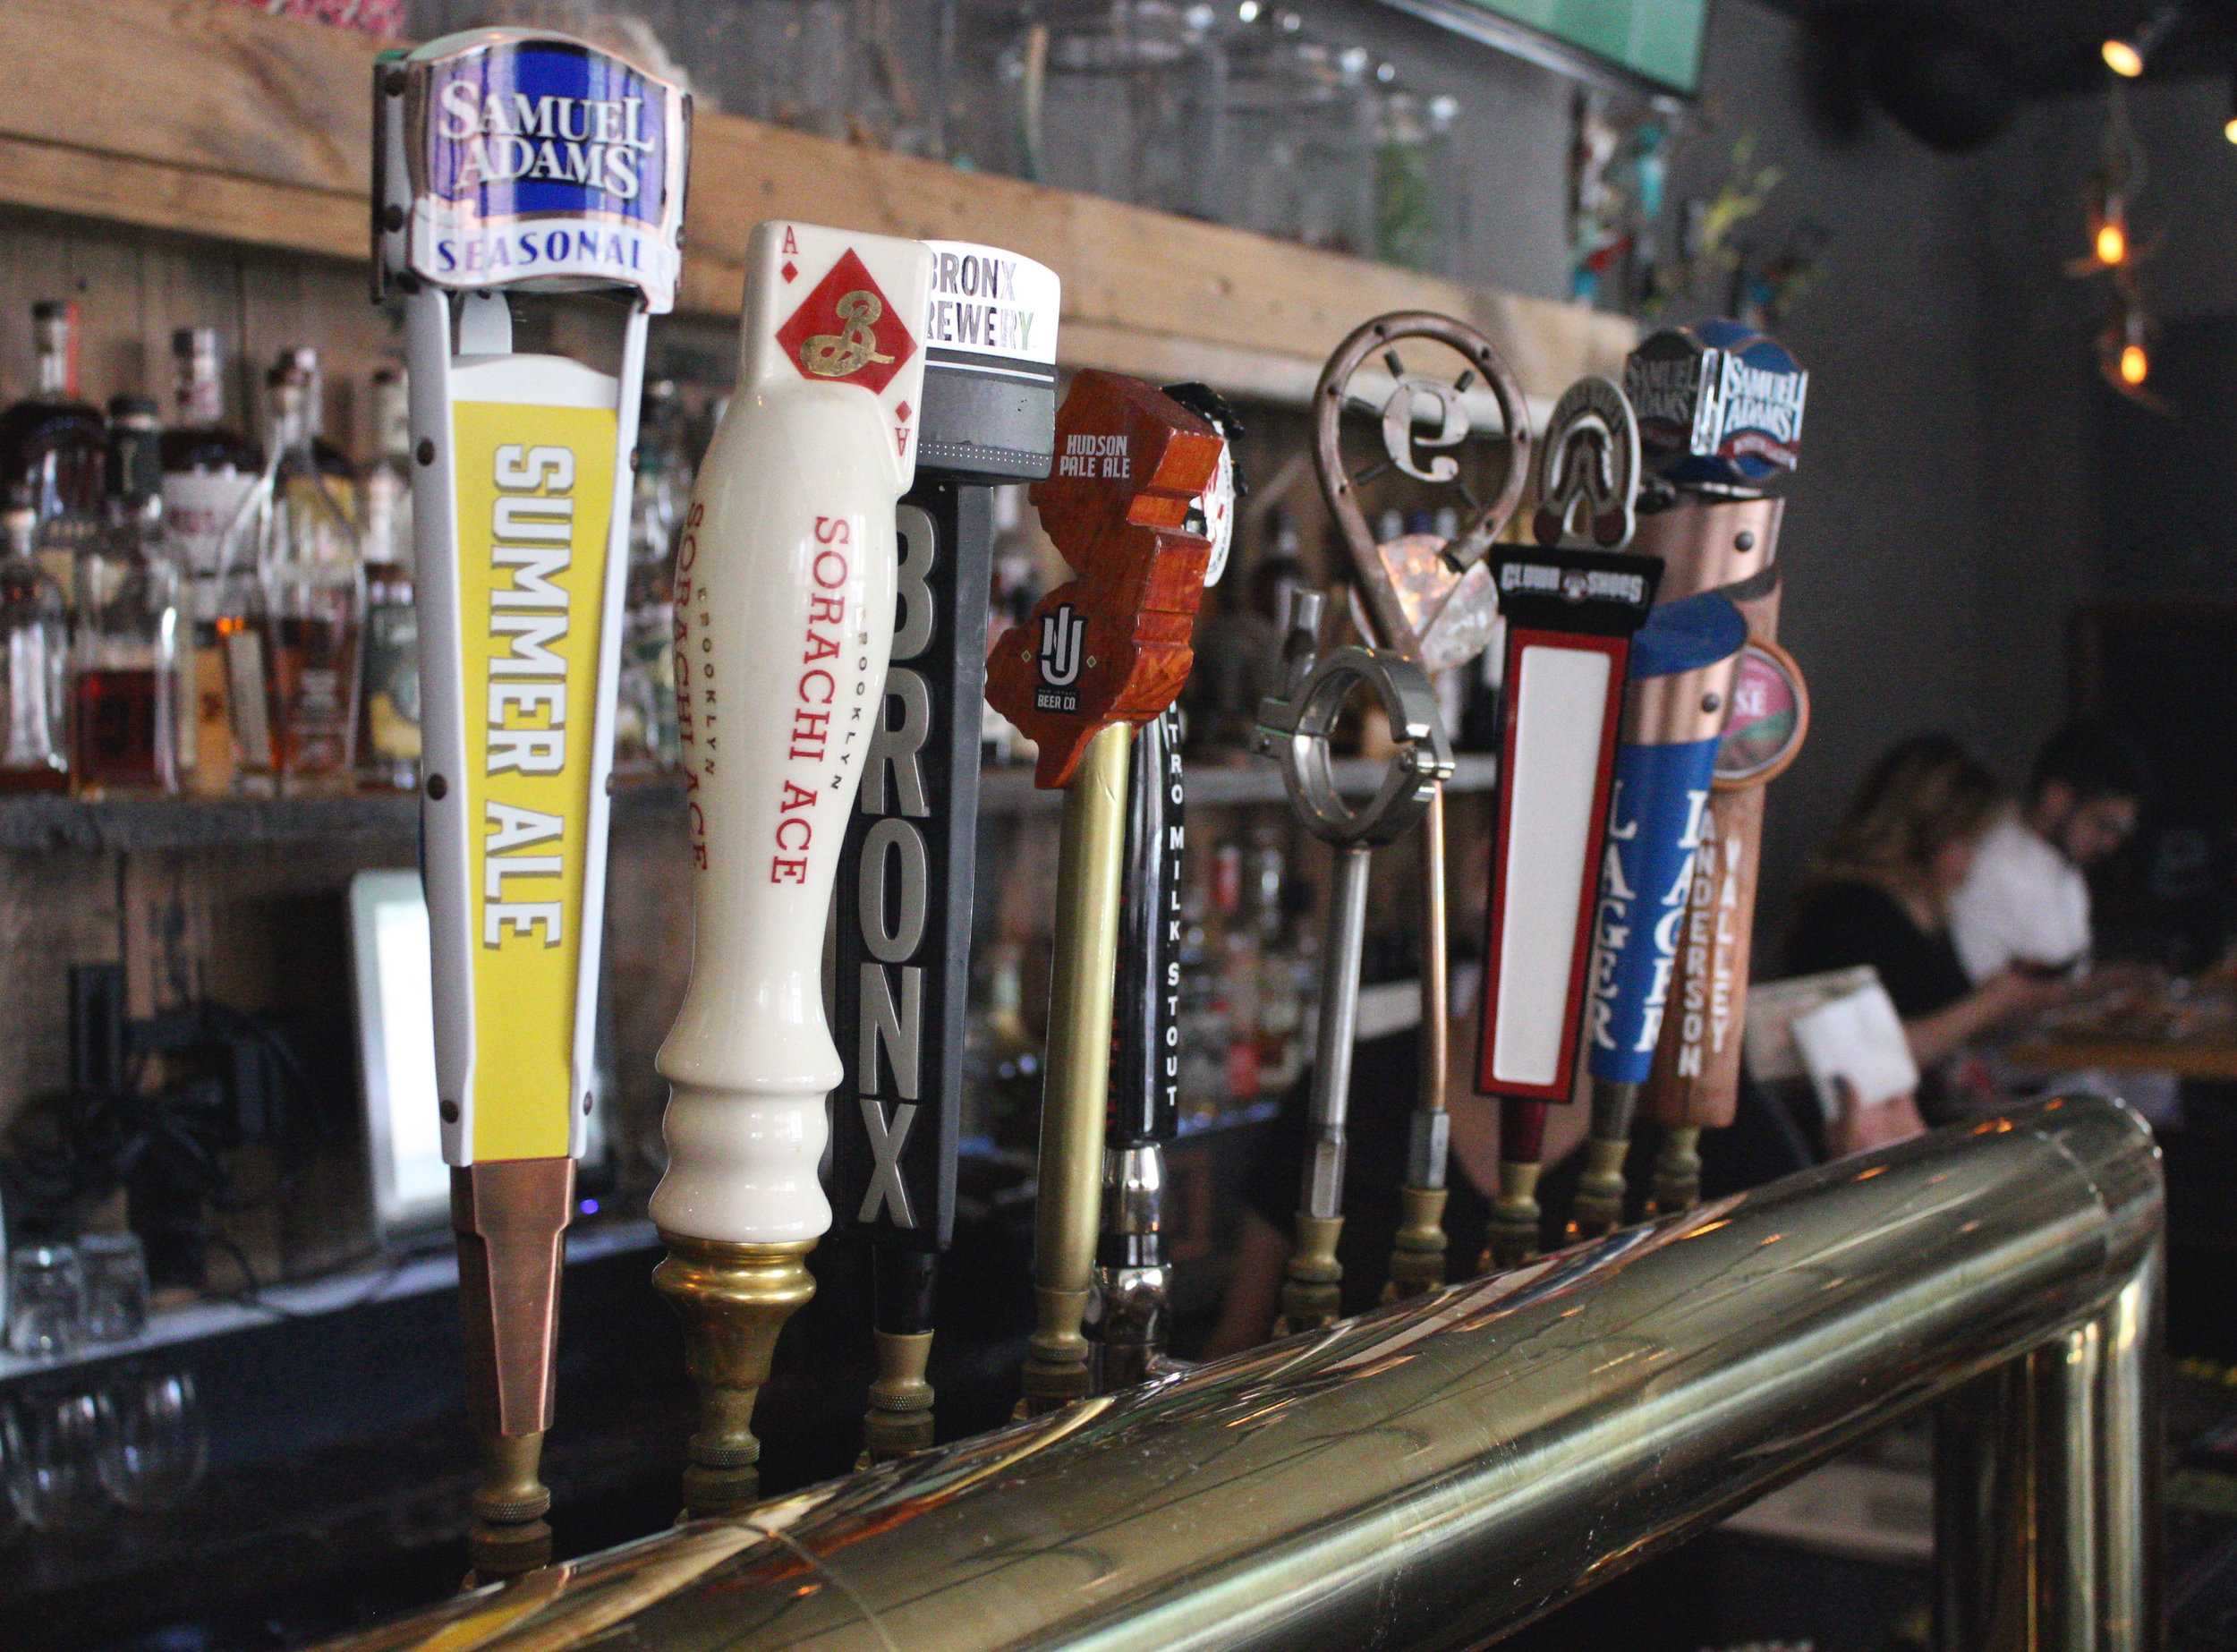 More Beer Please - The Cow has an expertly curated selection of rotational craft beers on tap!